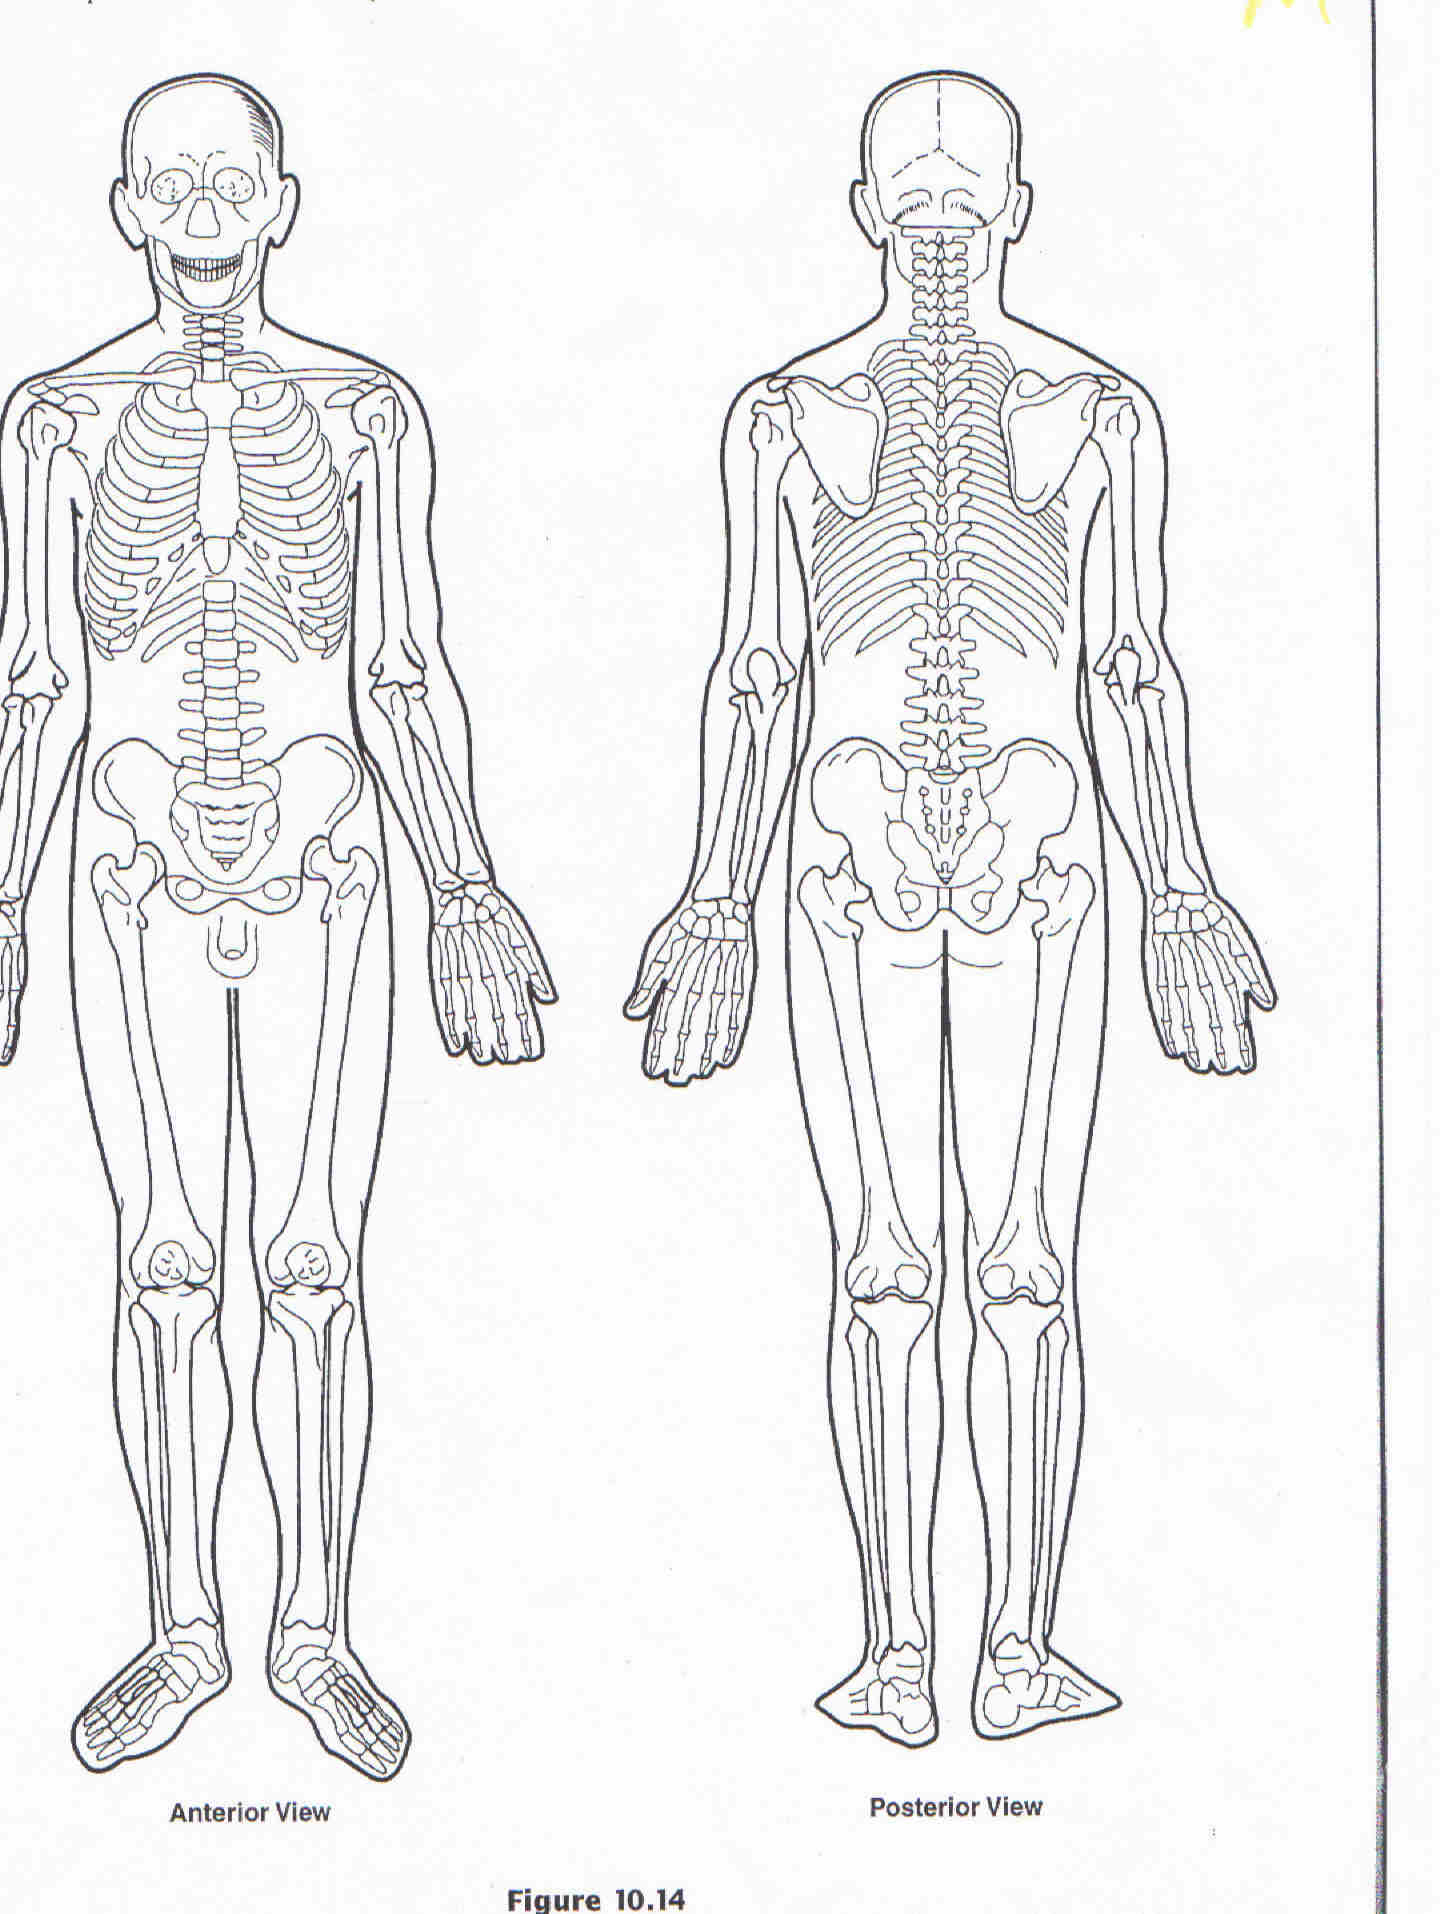 Muscle clipart unlabeled. Human body diagram blank